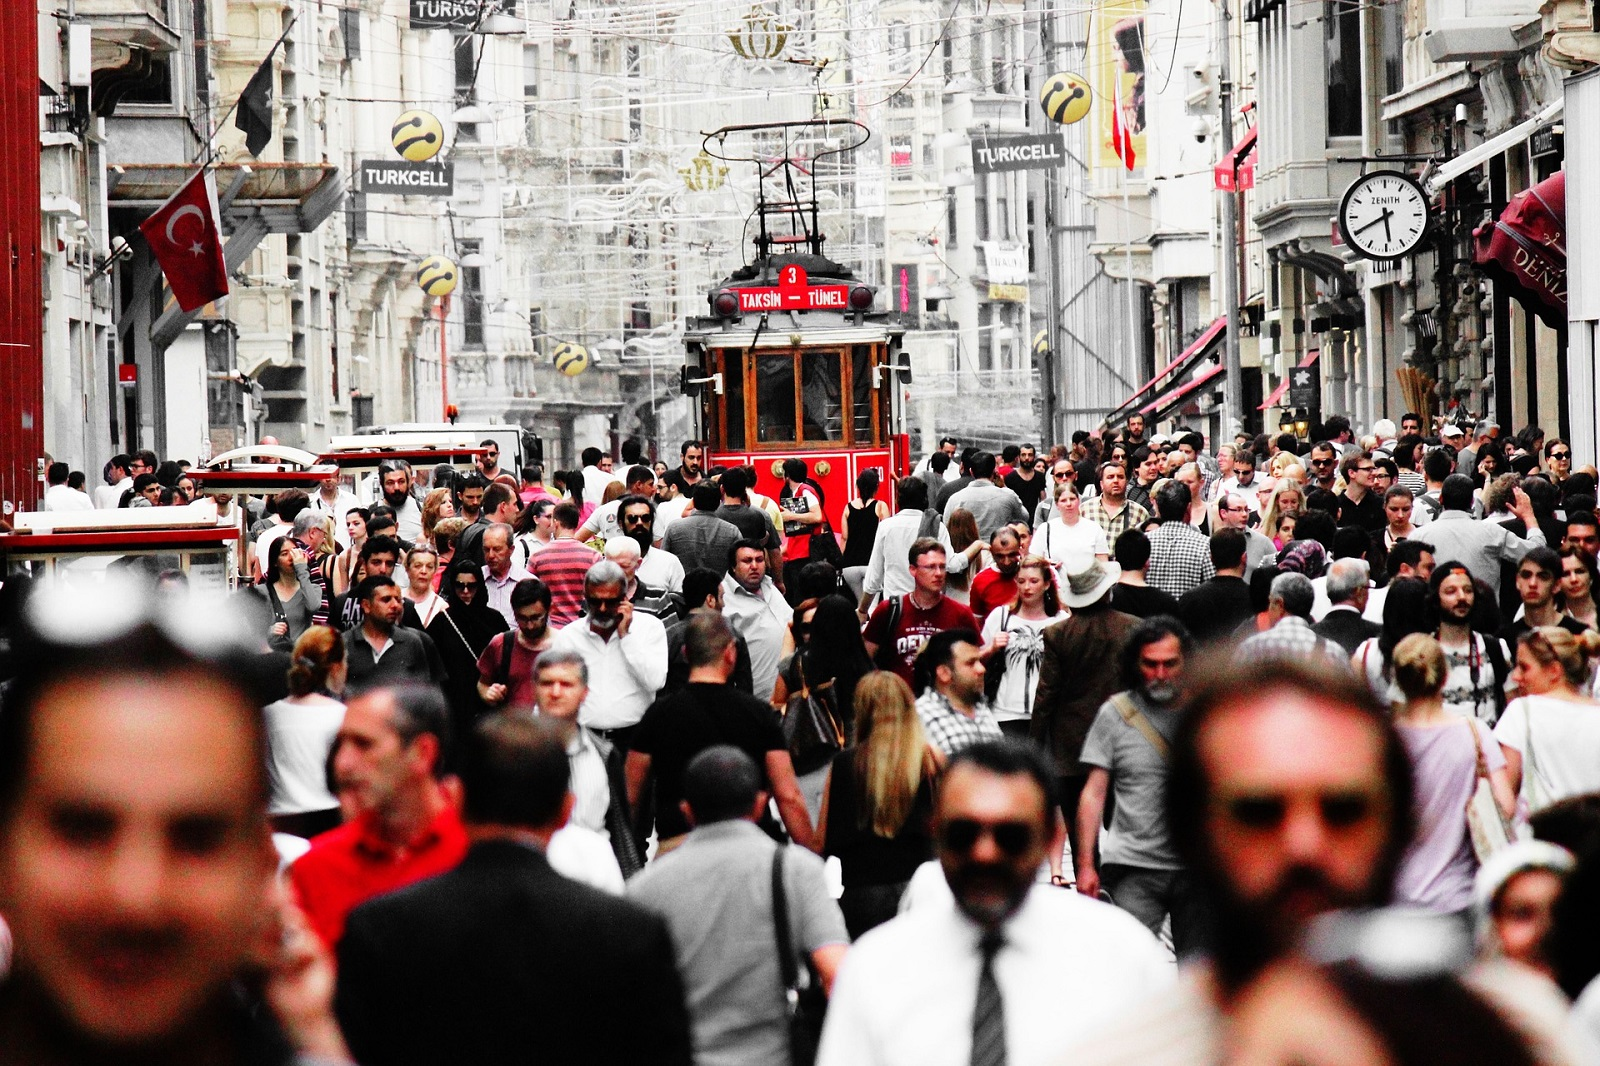 istanbul carrer